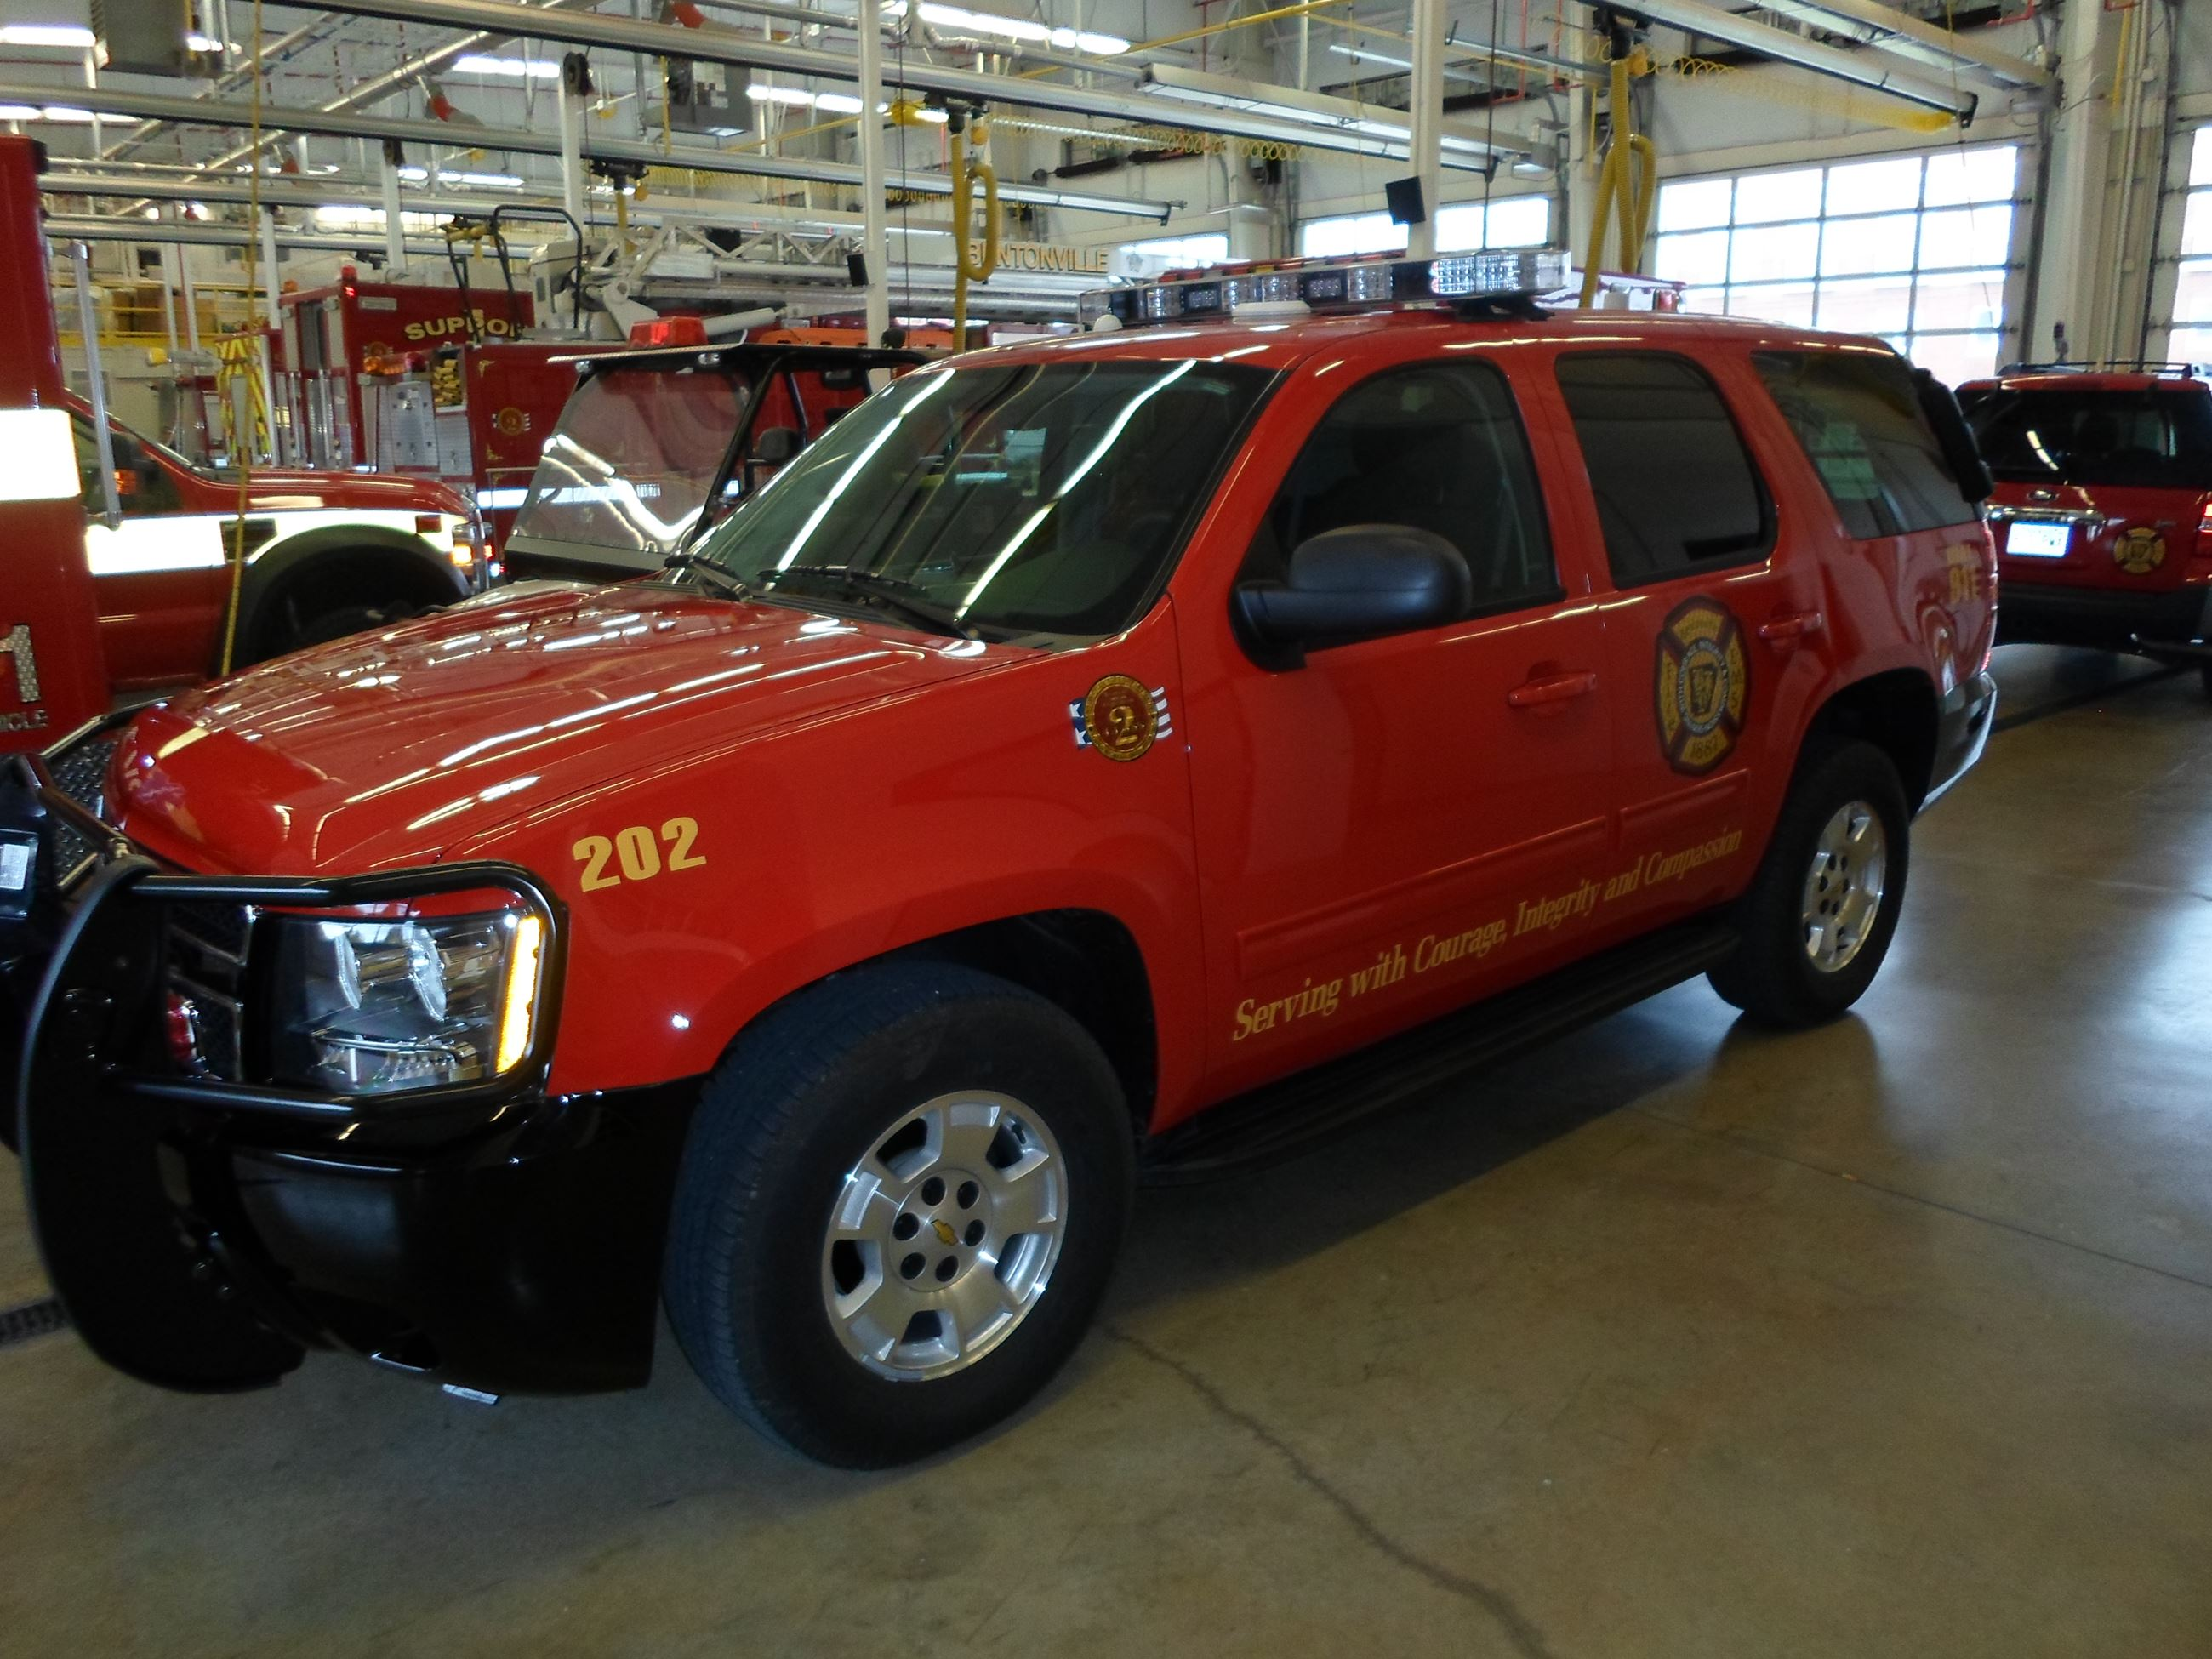 Command Vehicle Red SUV inside station